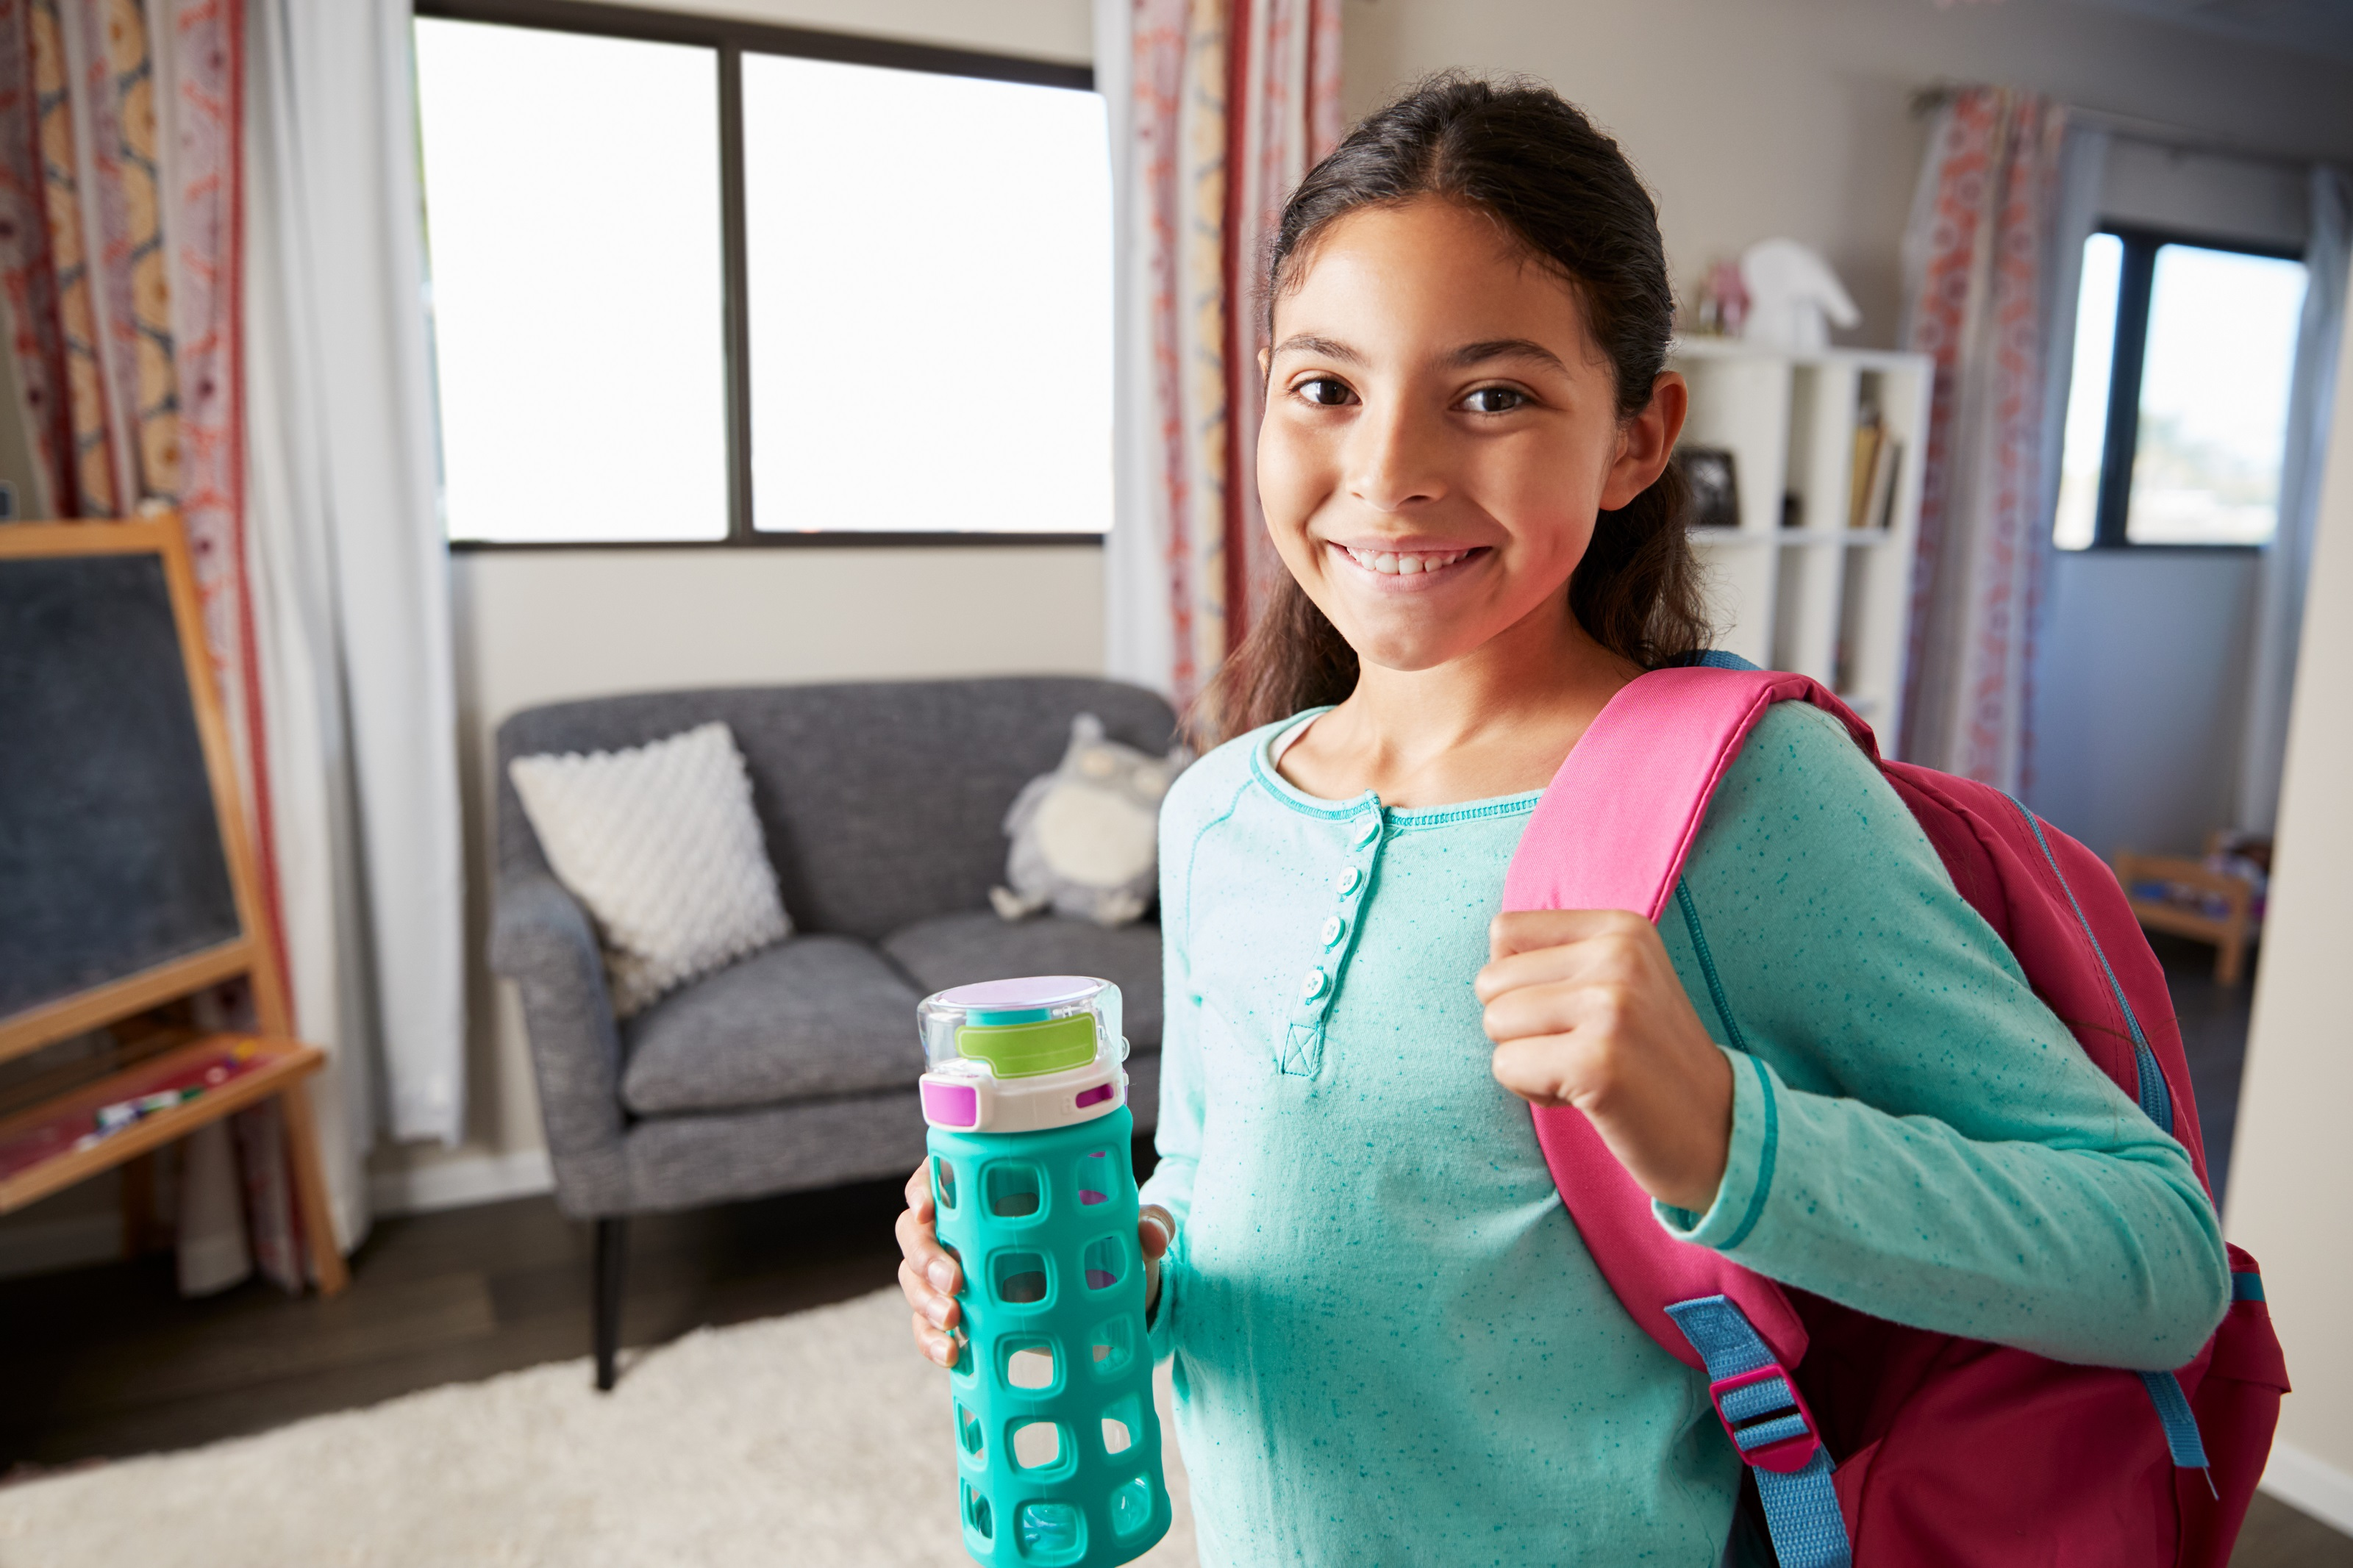 Healthy kids, healthy planet—keep up the great (home) work